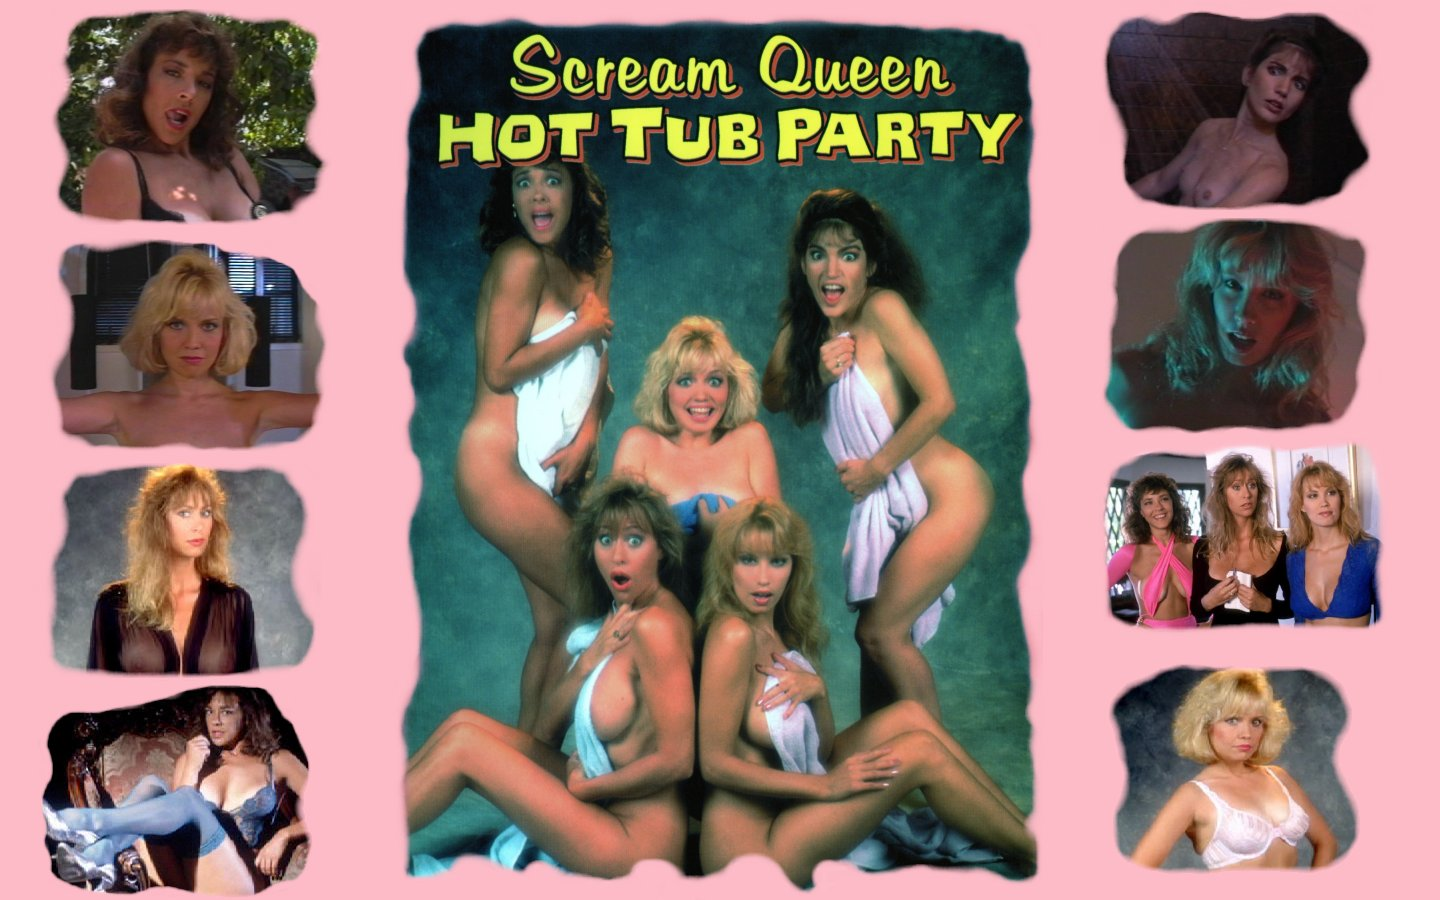 tub queen hot scream Party hollywood